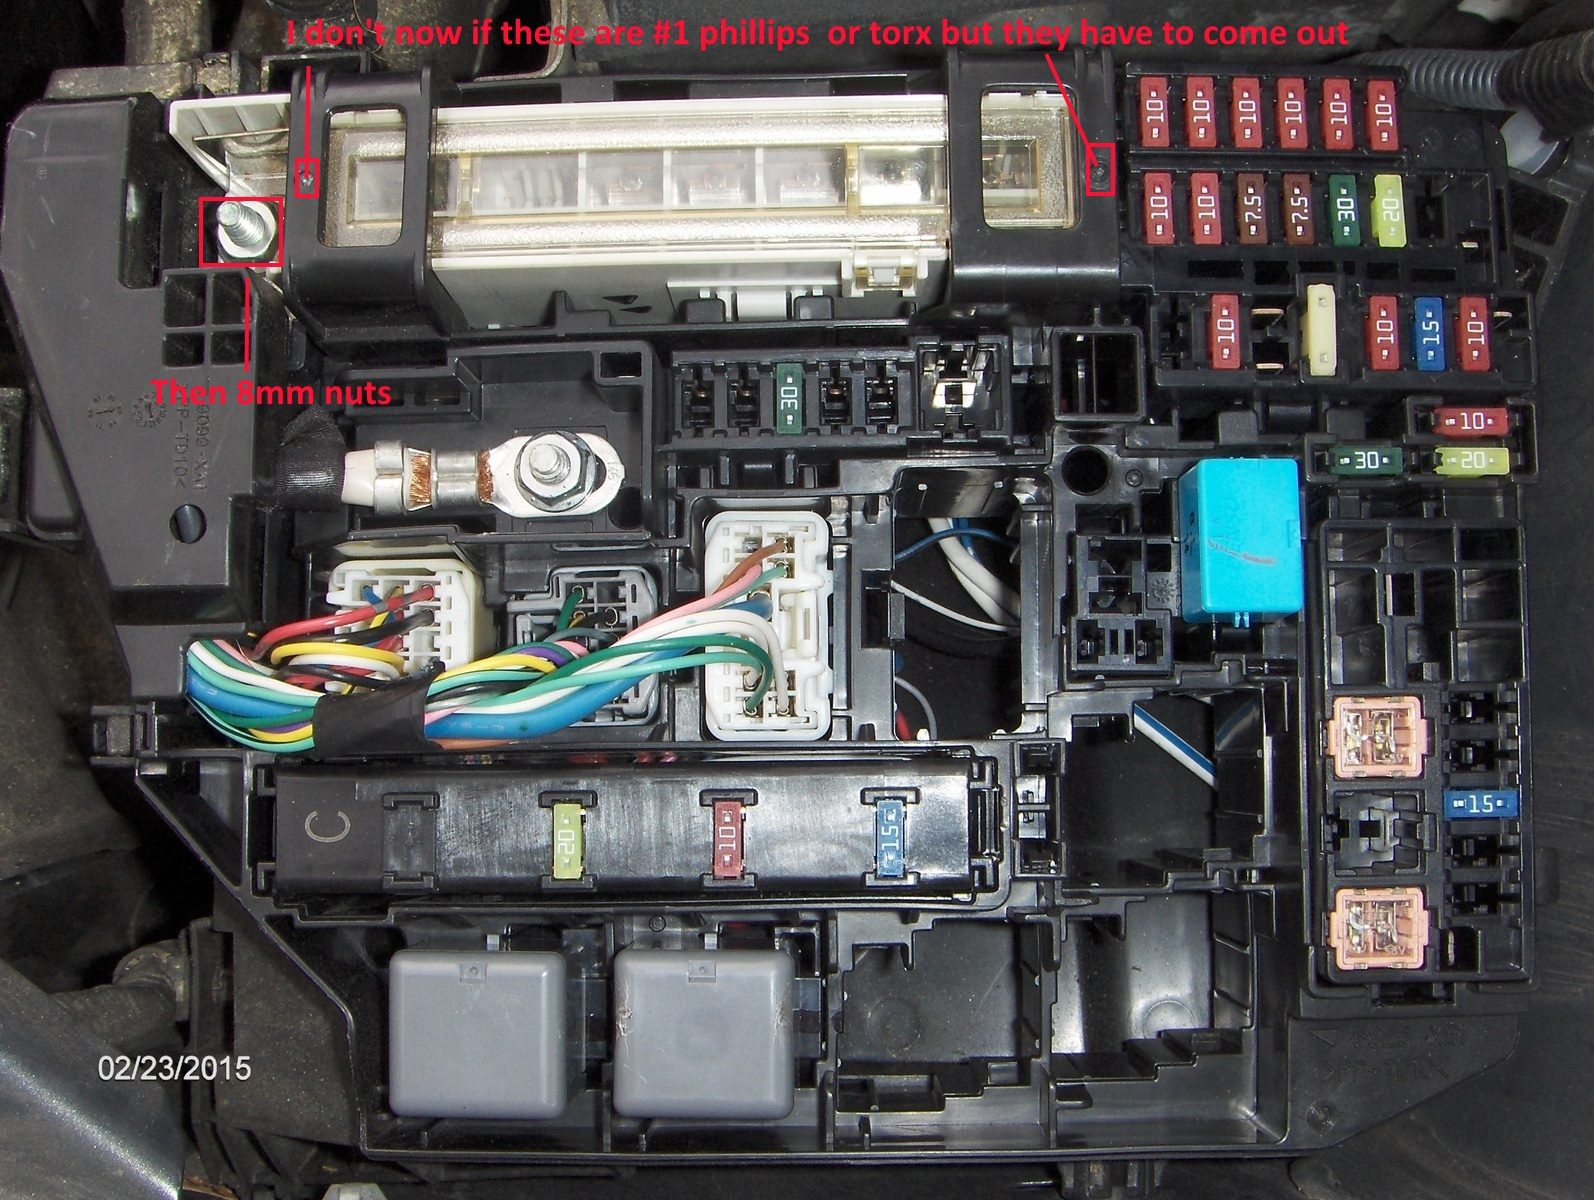 2009 toyota yaris radio wiring diagram alco oil pressure switch corolla questions how do i change the alternator